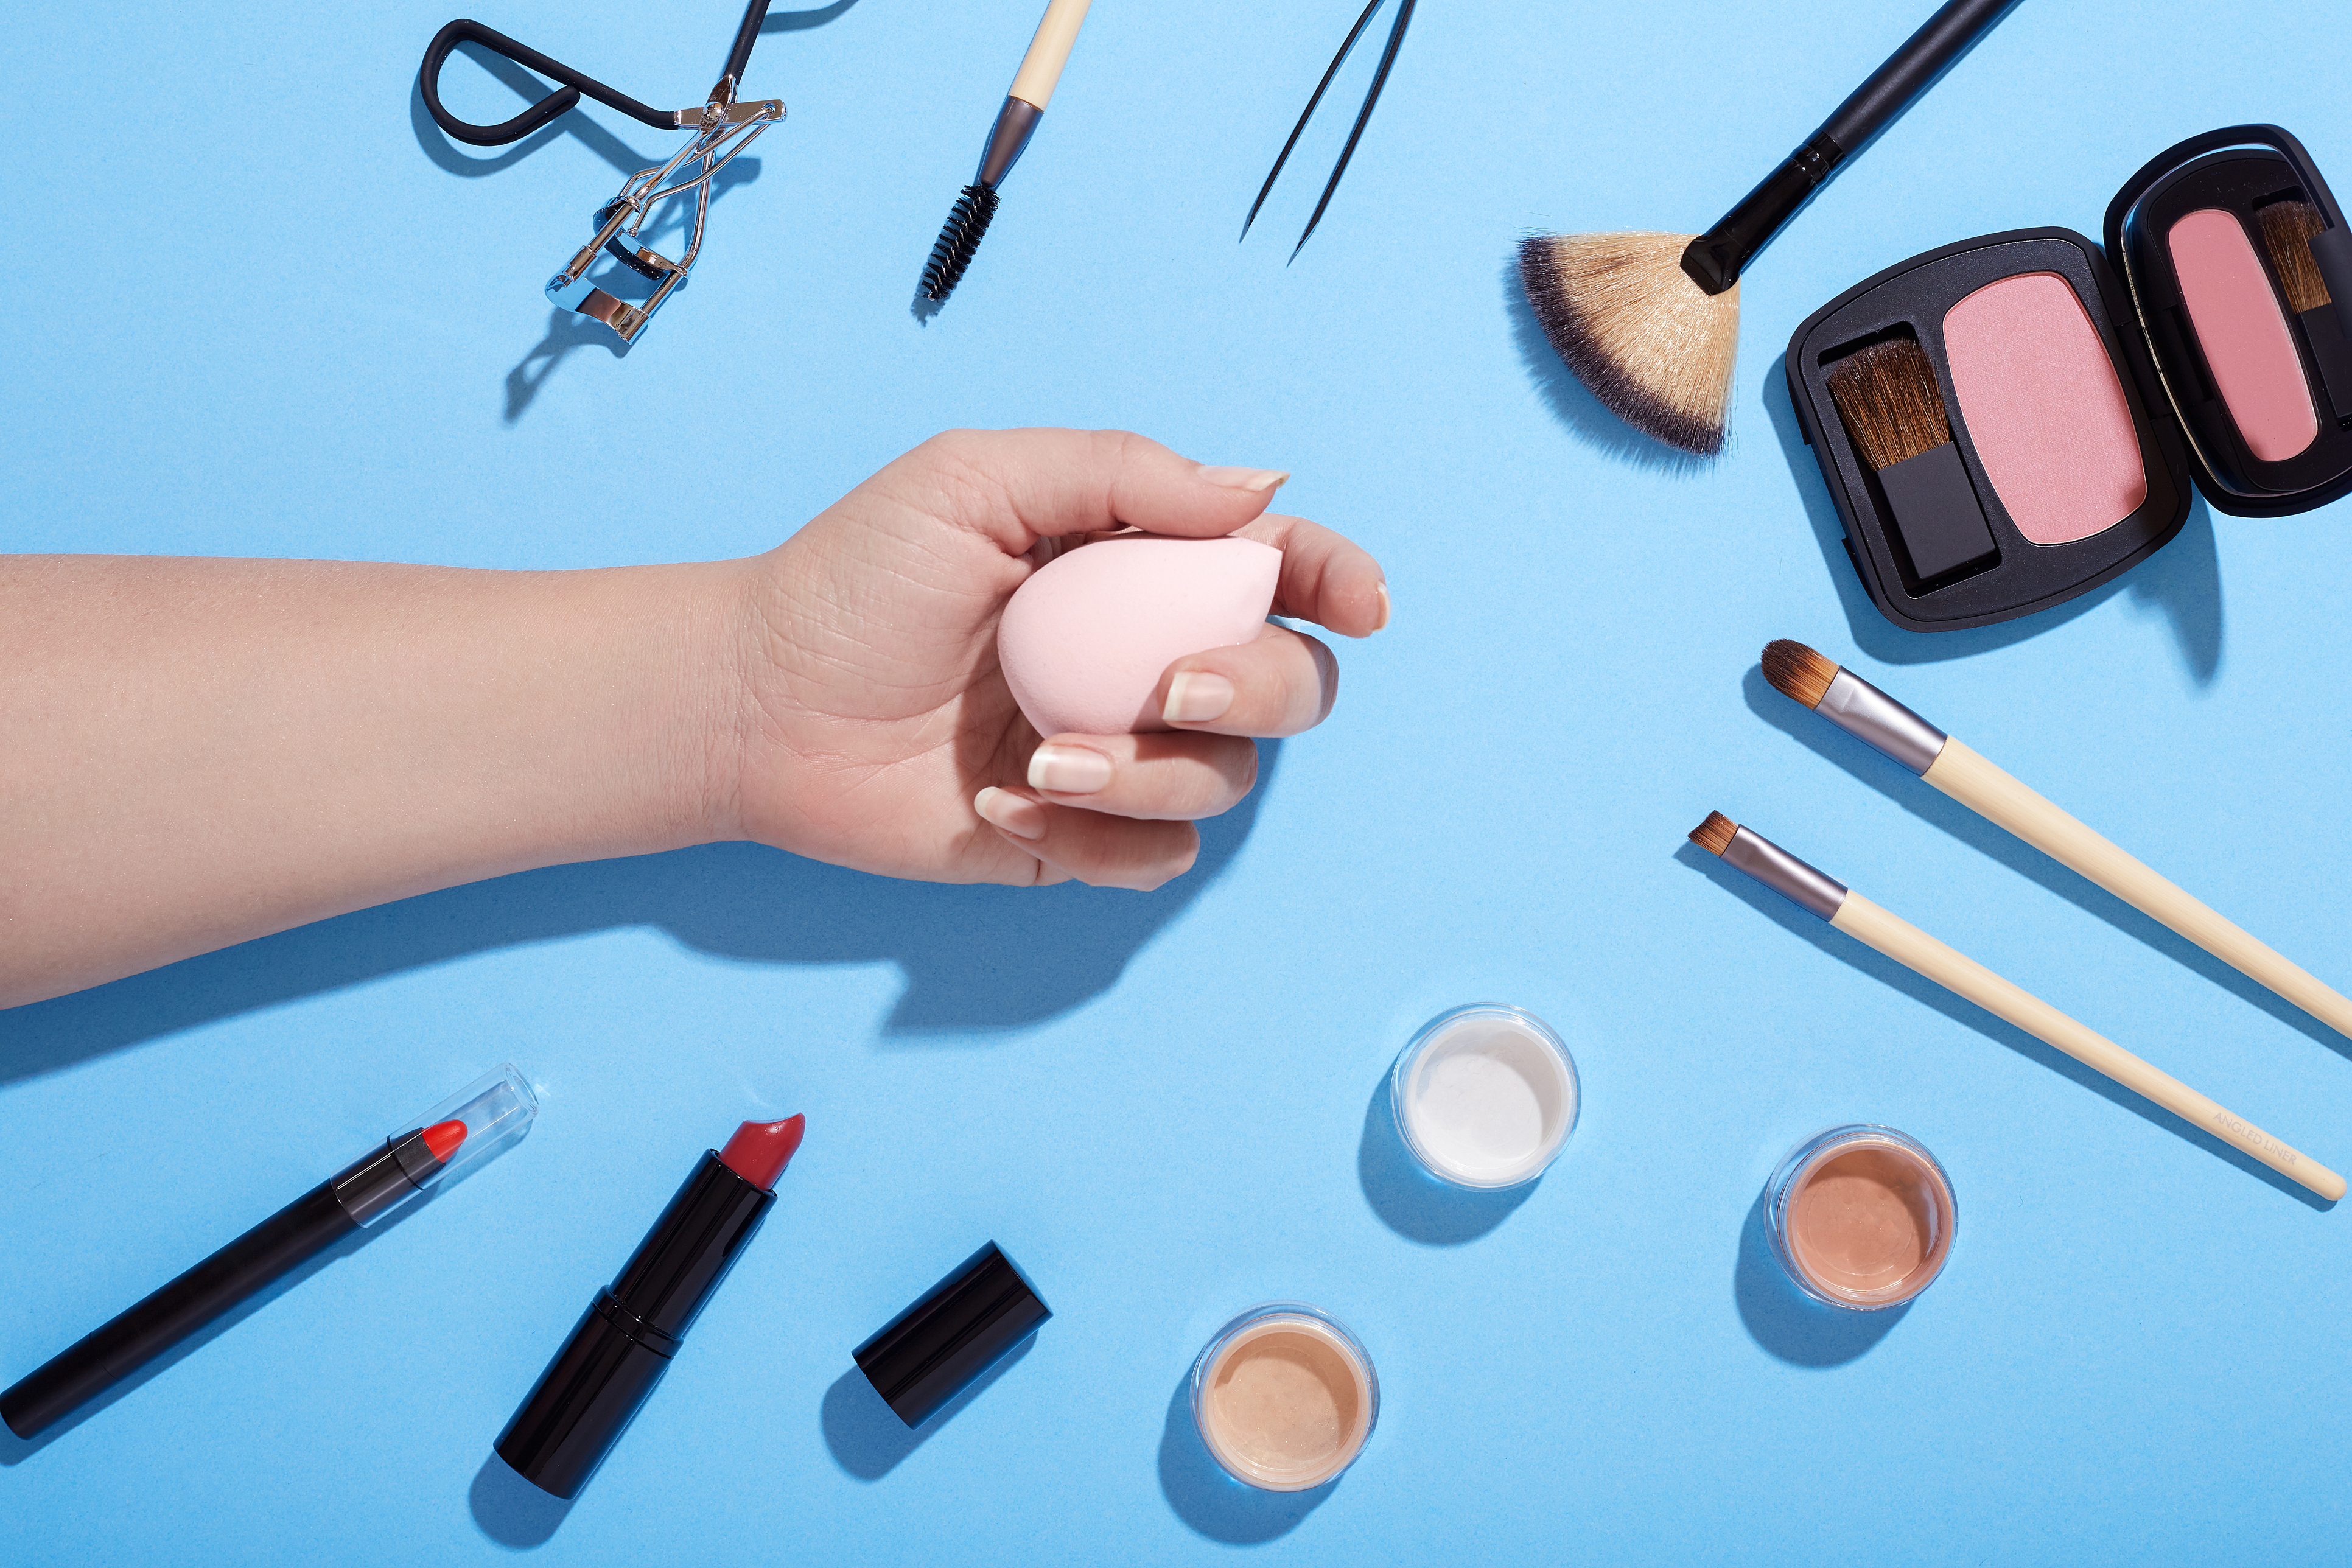 In-use makeup products, namely blending sponges, crawling with infectious bacteria: study